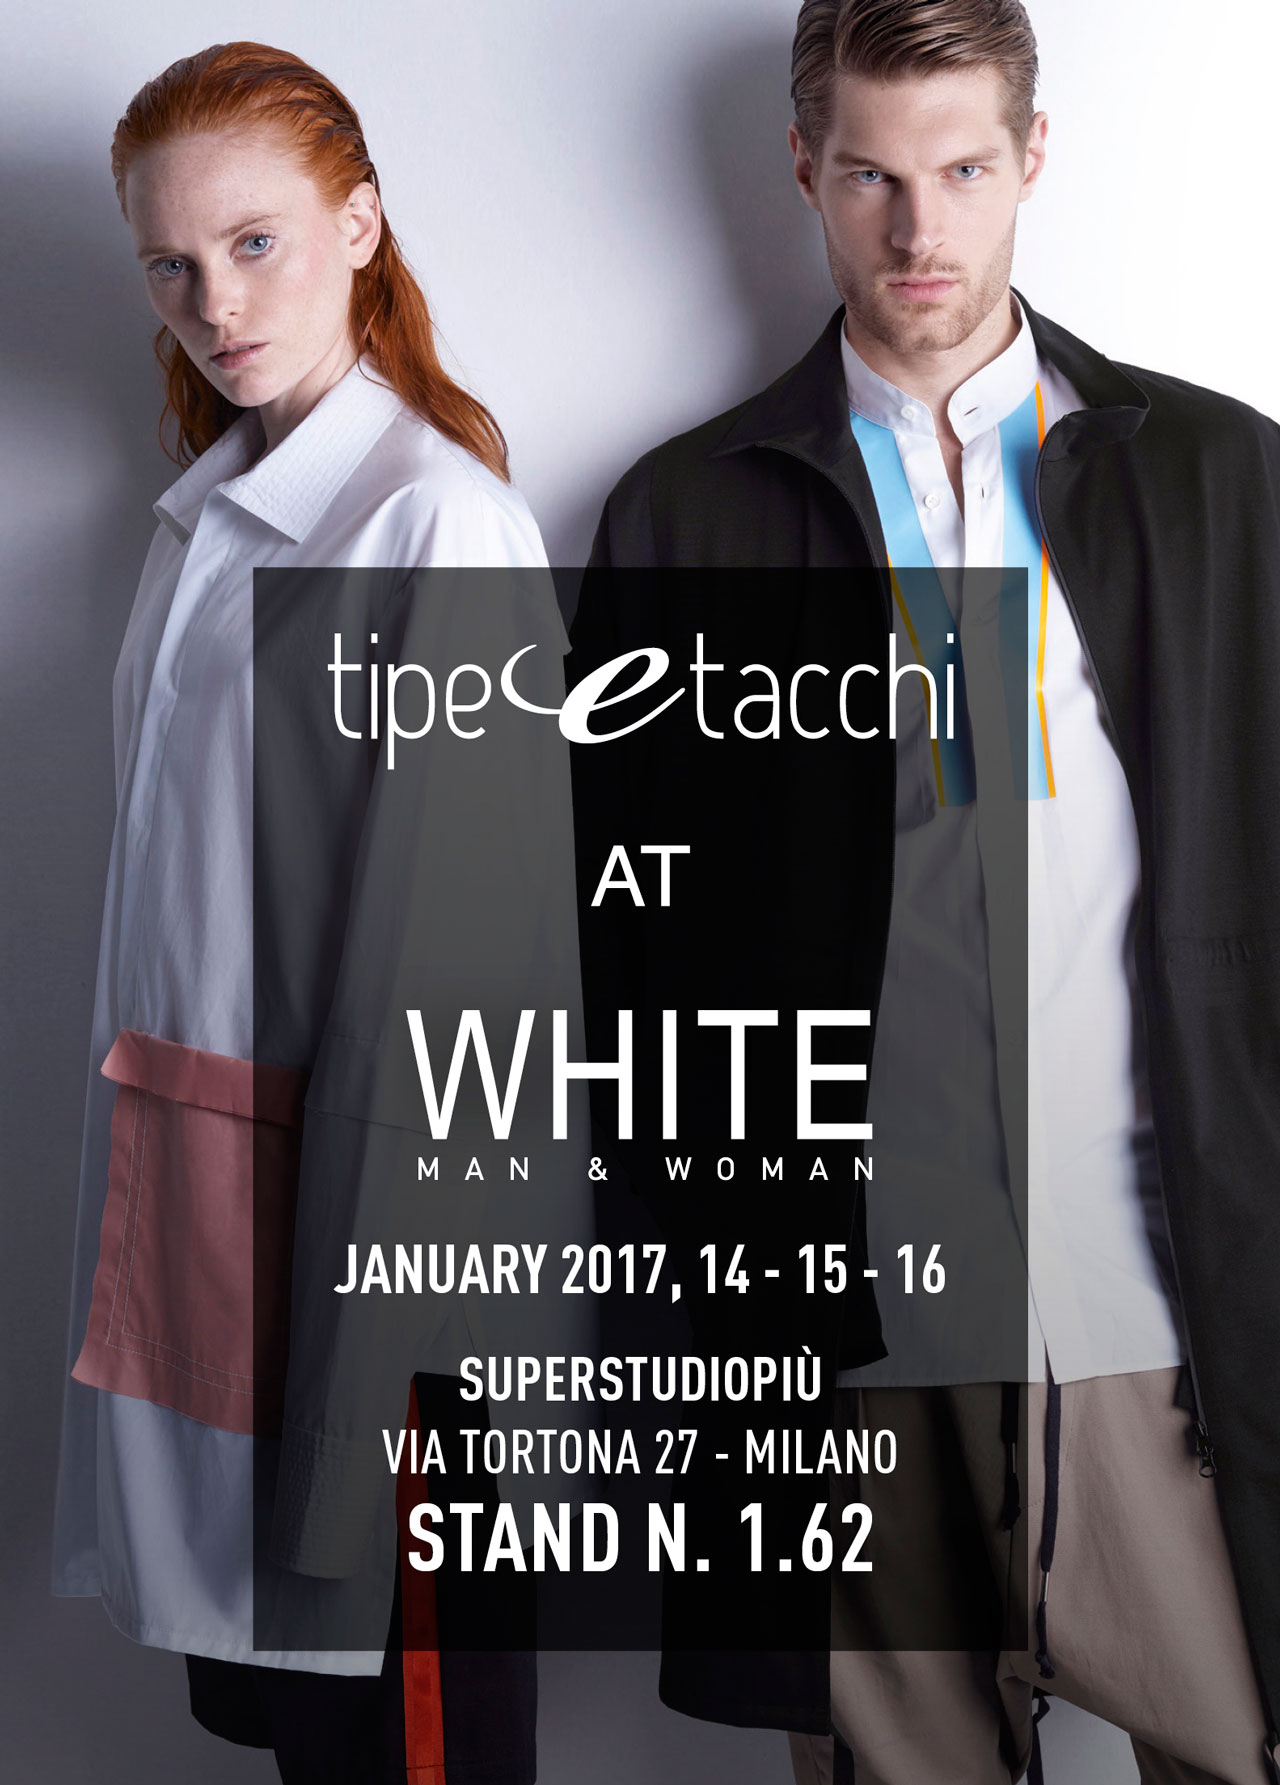 TipeeTacchi at White Man & Woman-January 2017